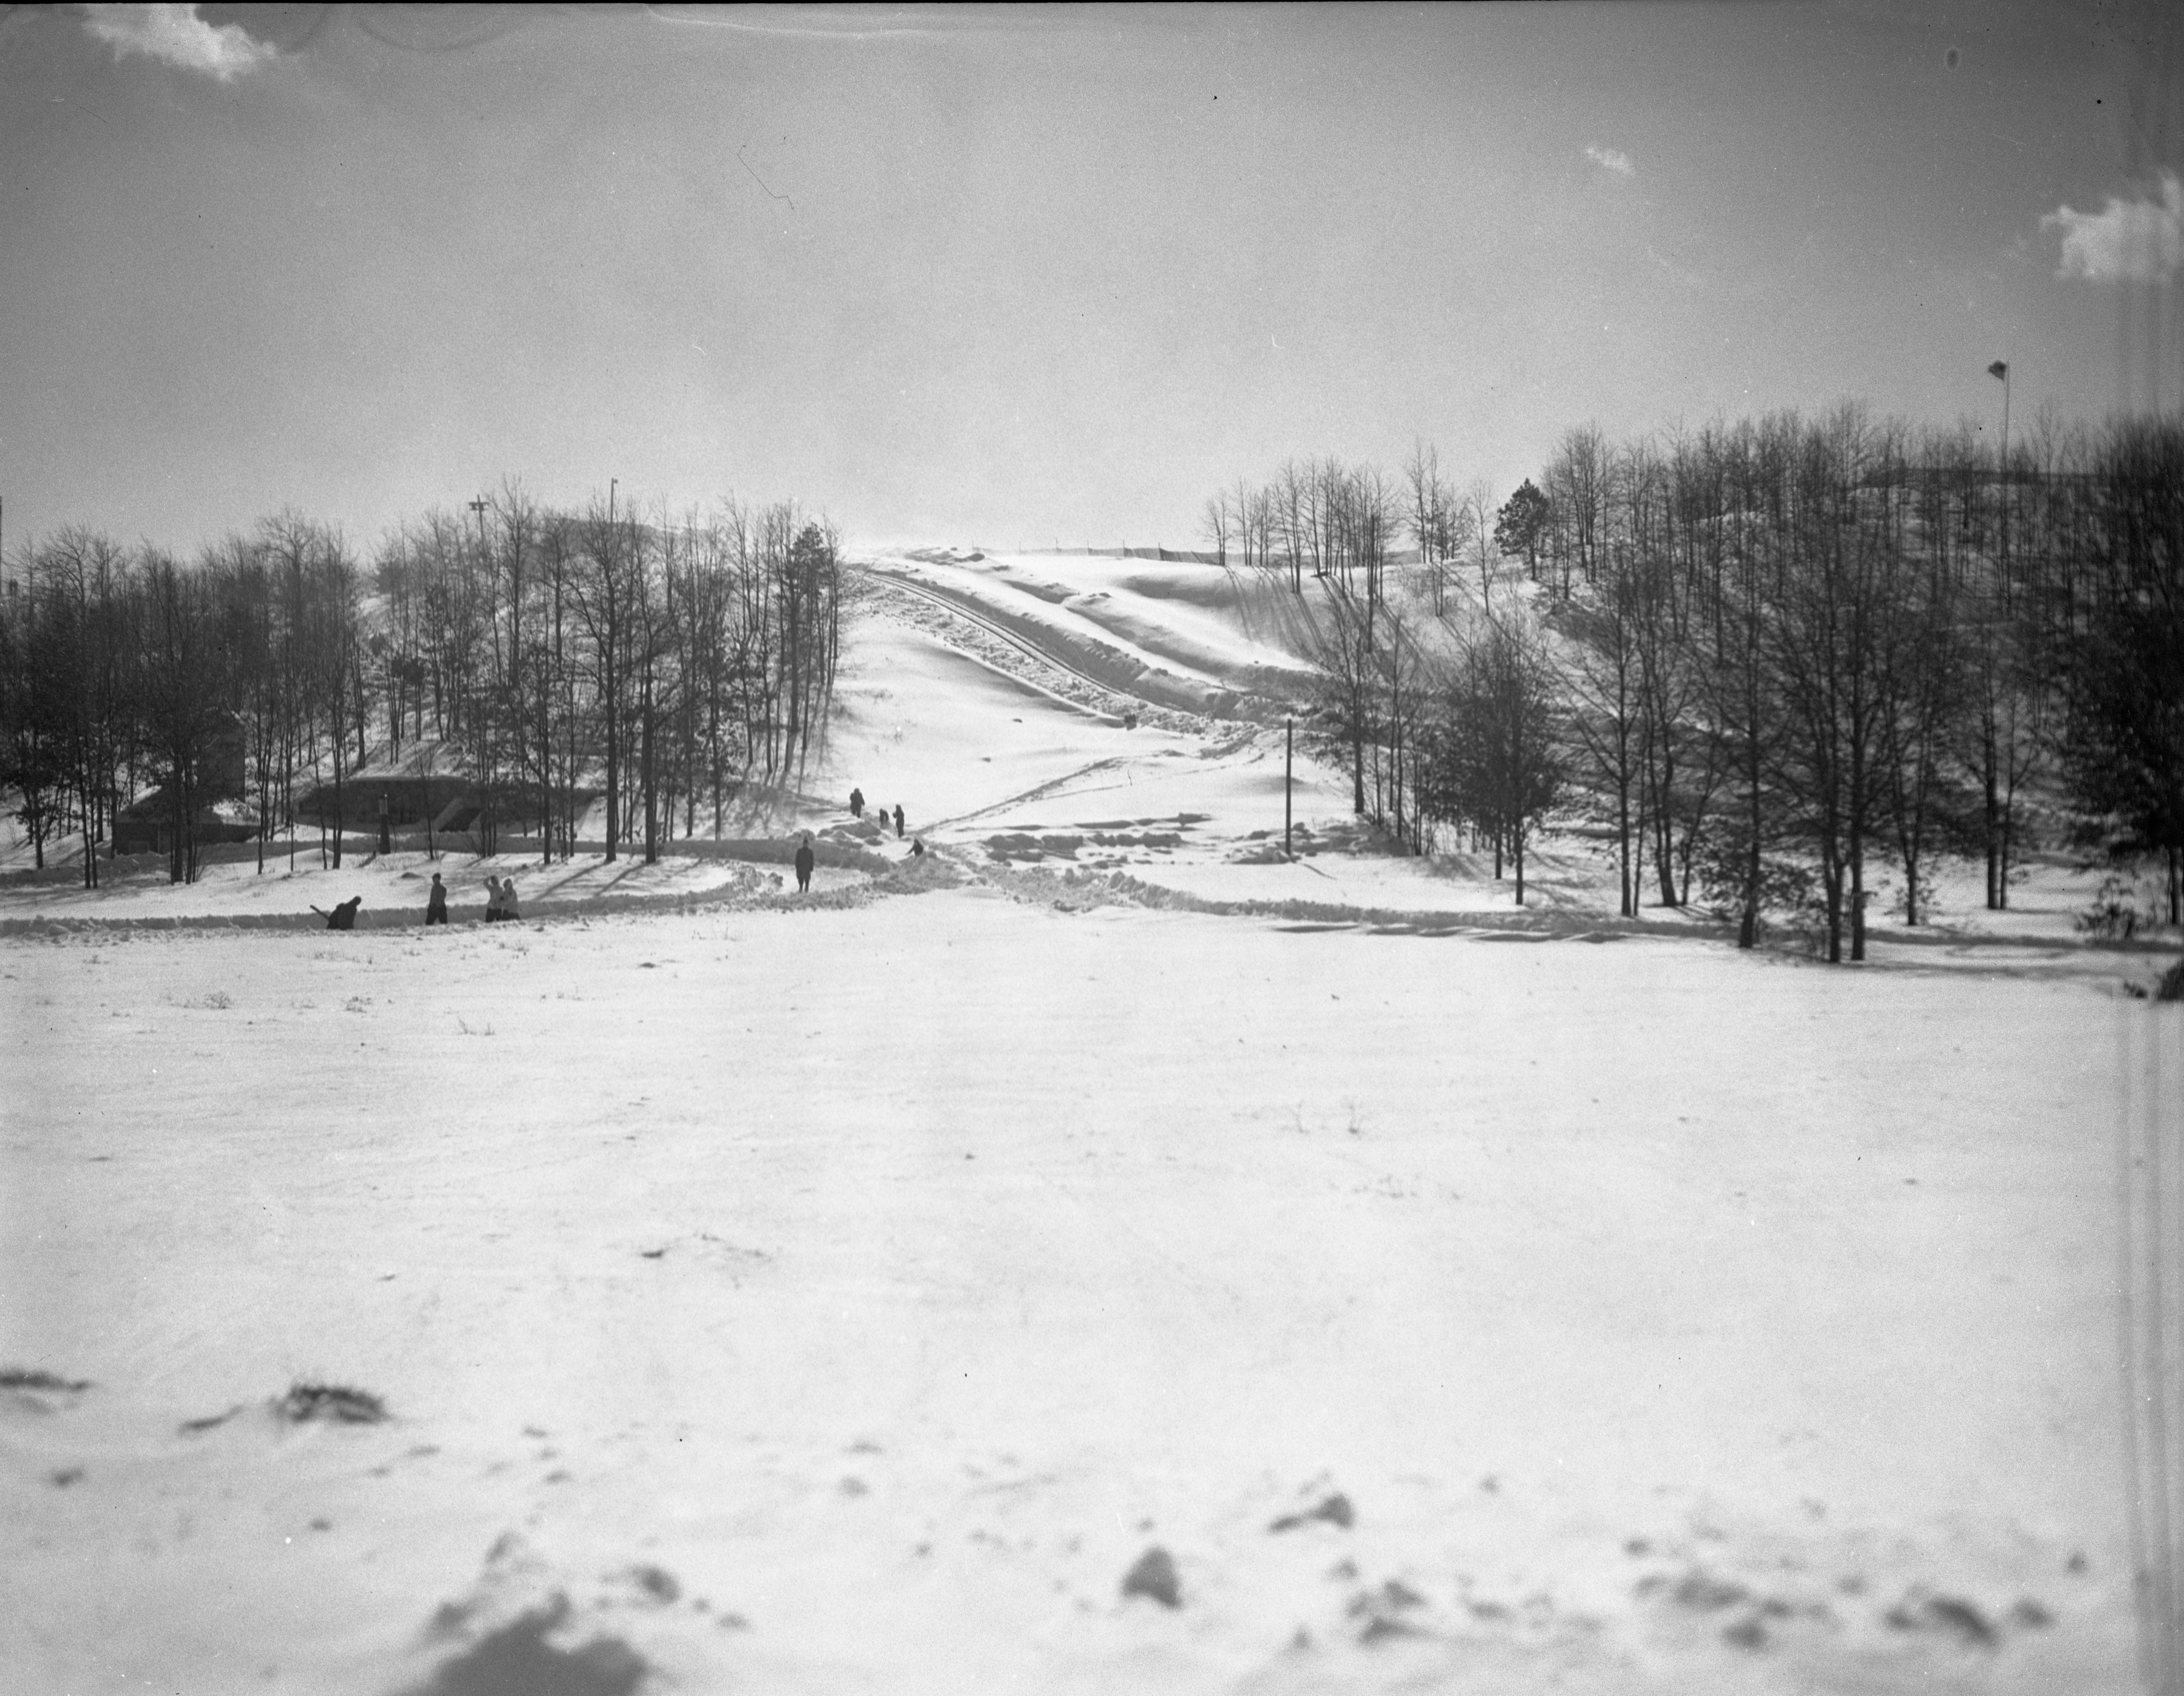 Grayling Winter Sports Area, February 1946 image